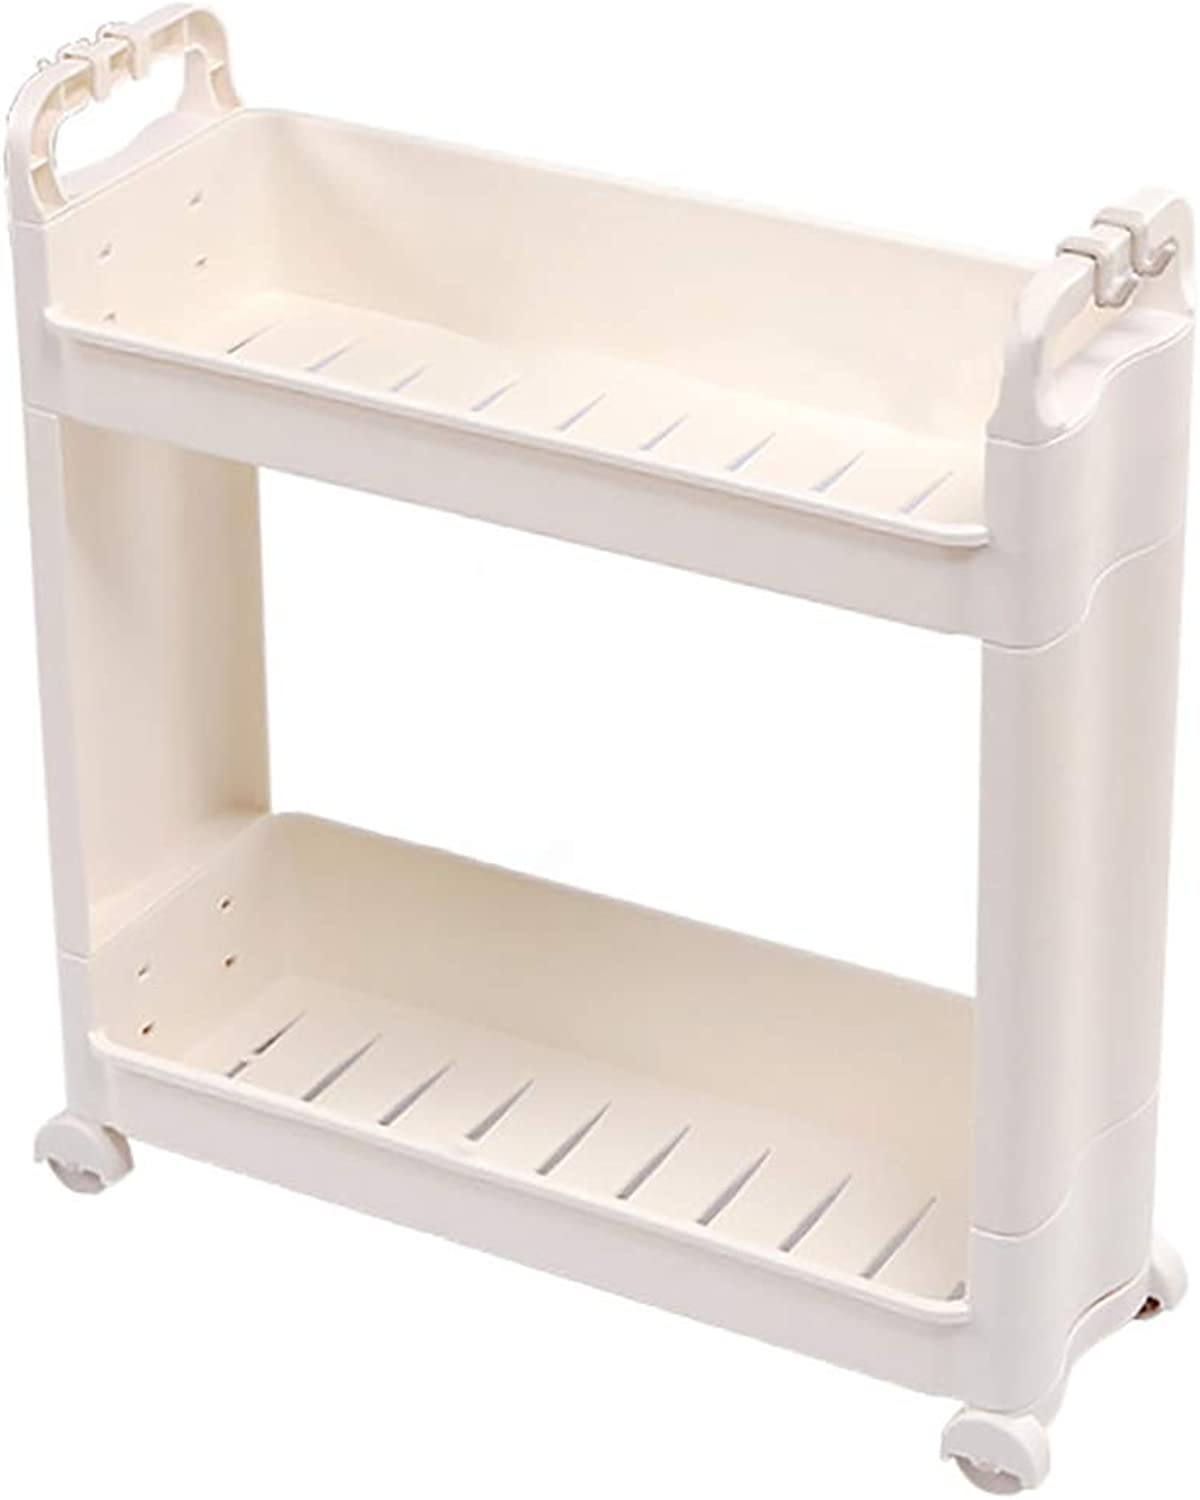 HUYP Floor-Mounted Removable Bathroom Storage Organizer White Minimalist